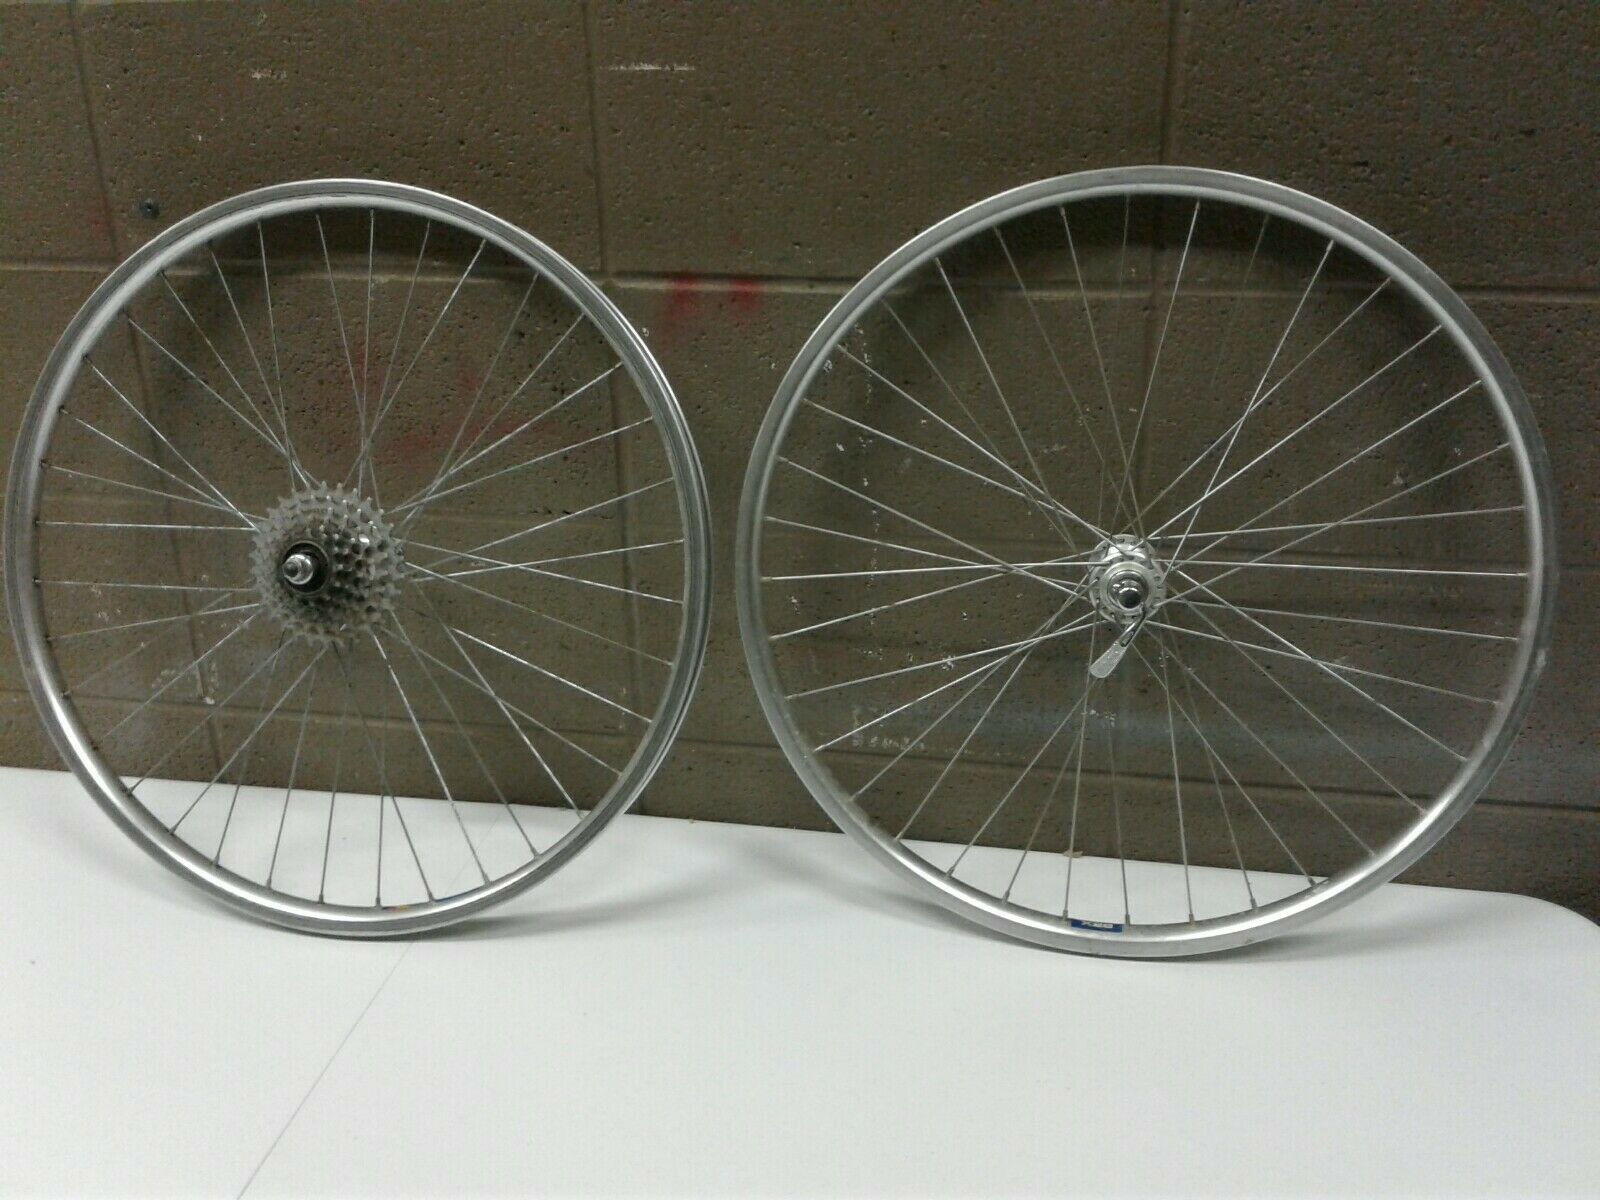 Vintage Saturae X28 Touring Wheels 5 Speed Front and Rear Rim (dd) (c43)